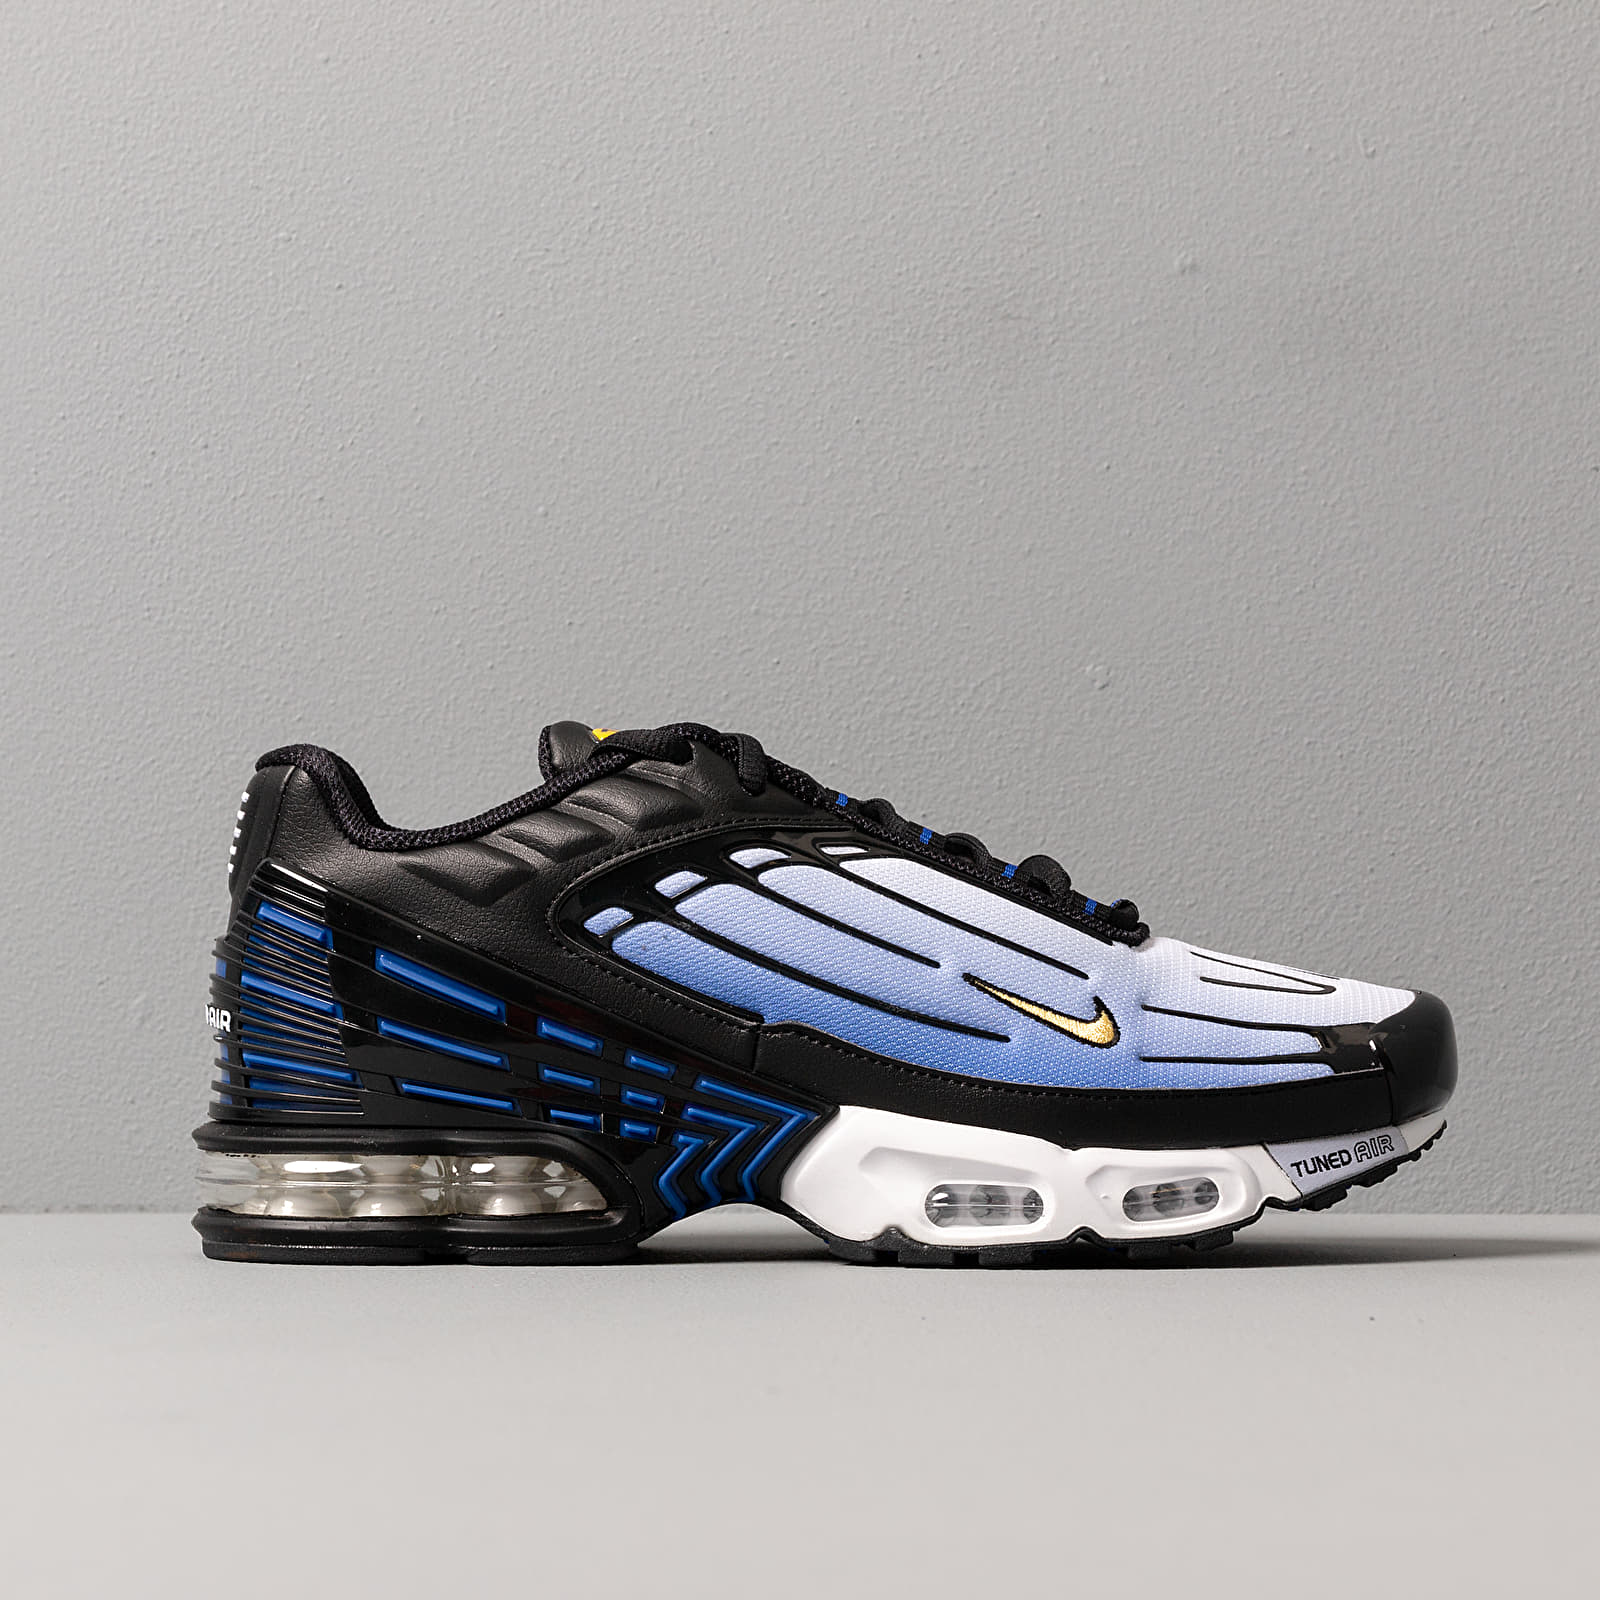 Nike Air Max Plus III BlackChamois Hyper Blue White